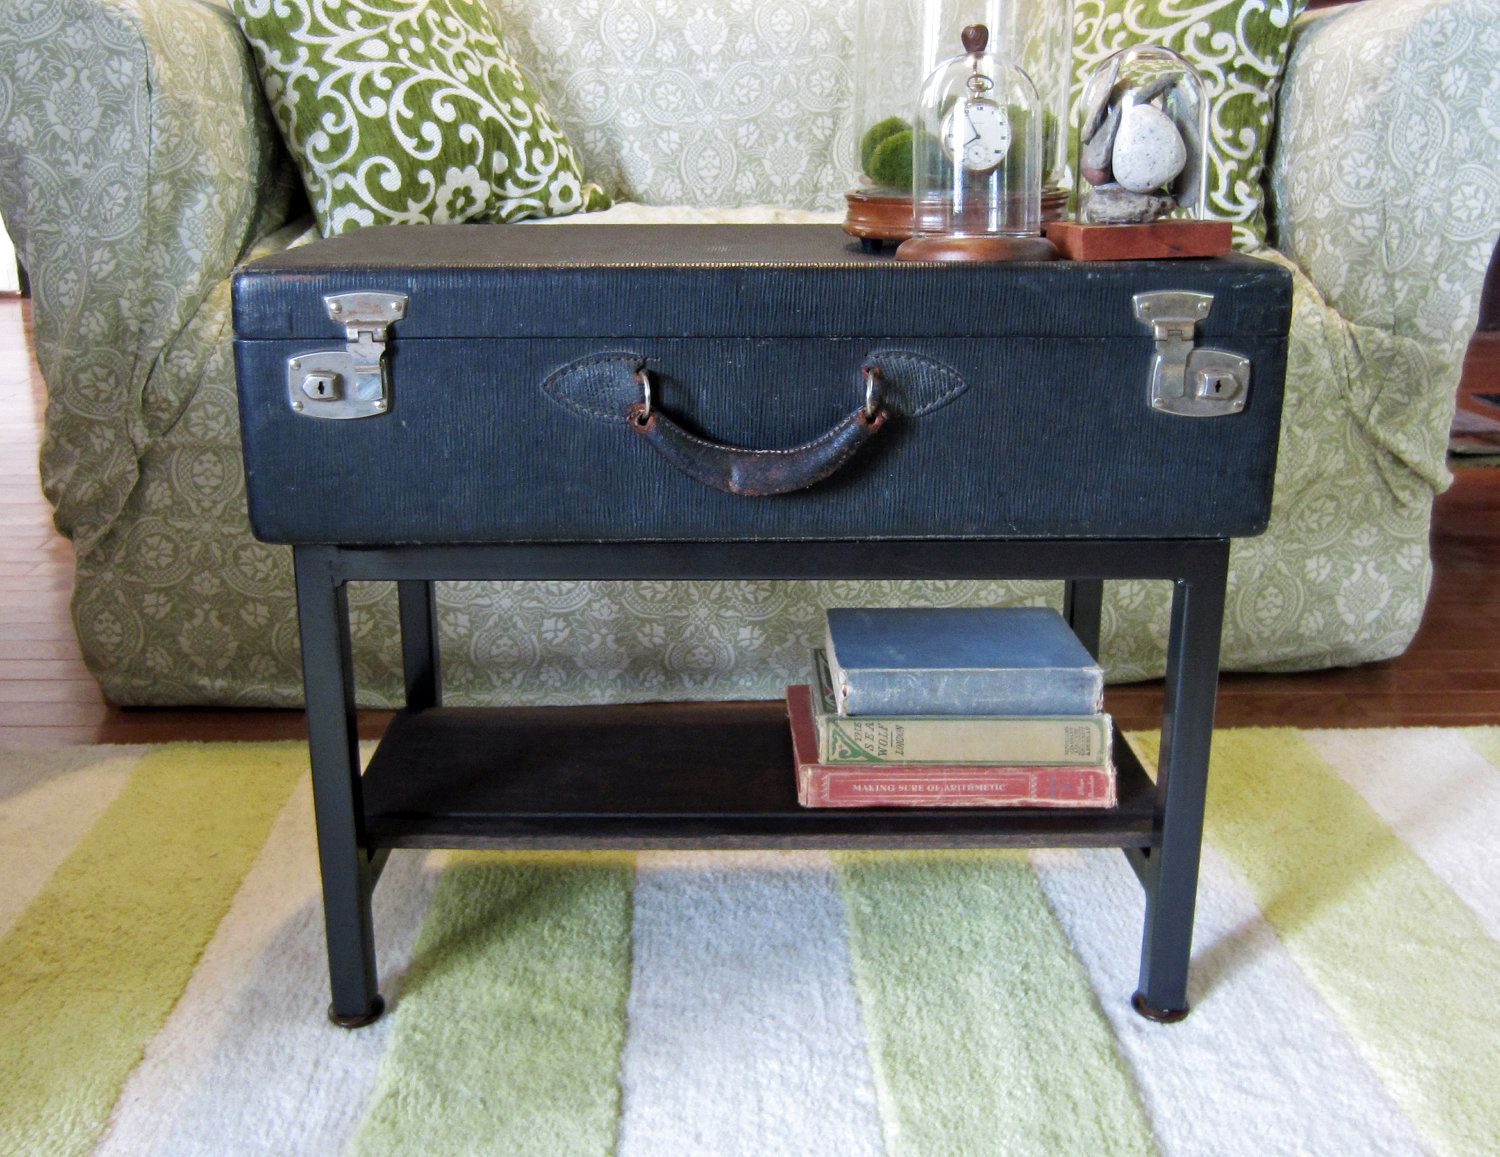 Handmade Black Vintage Trunk Suitcase Coffee Table with Storage Shelf - VINTAGE STEAMER TRUNK CHEST Banded Railway LUGGAGE Suitcase COFFEE